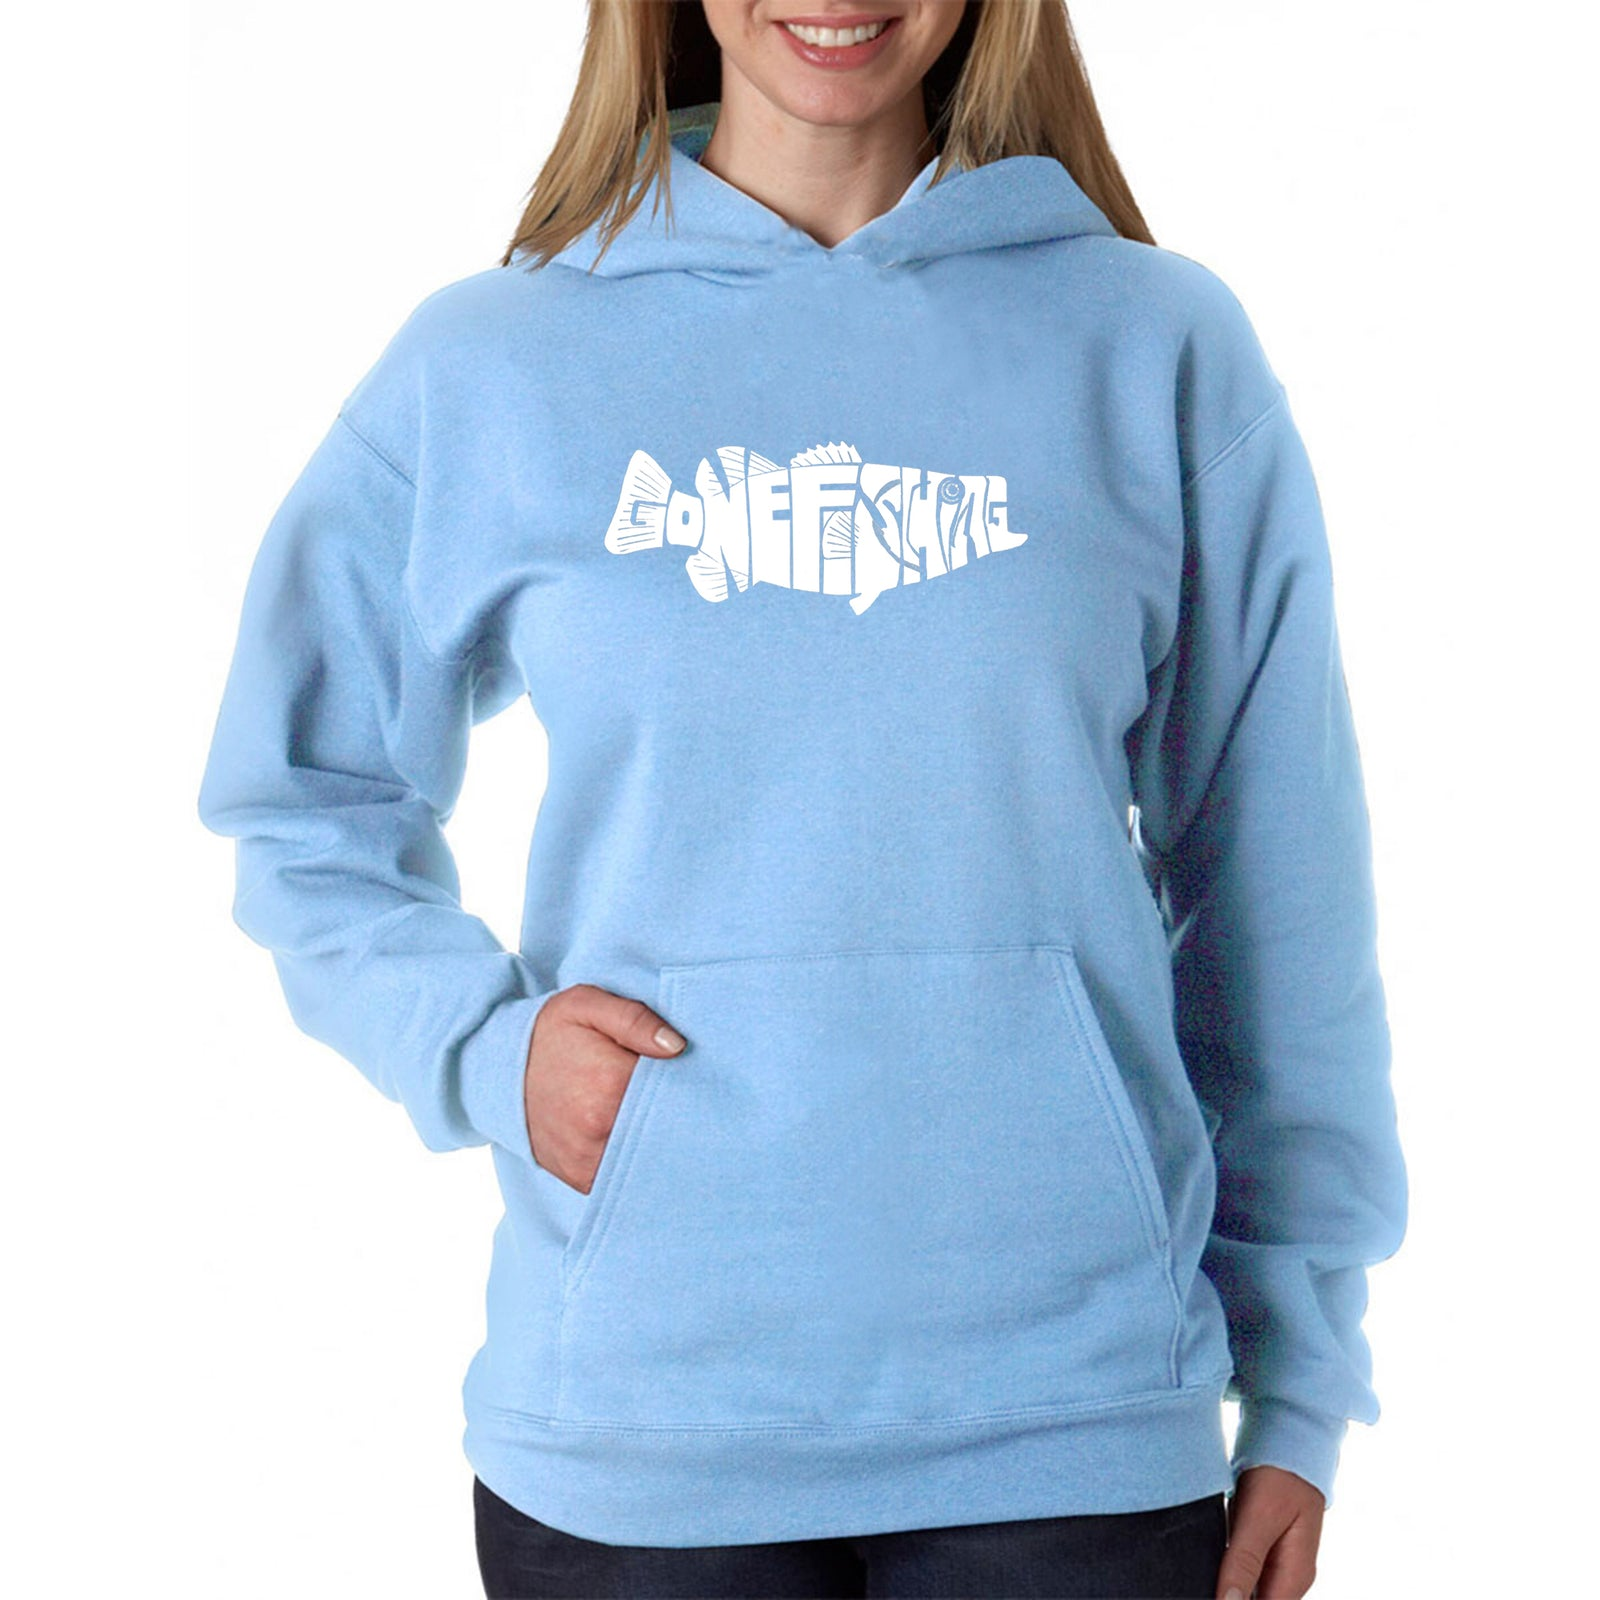 Women's Hooded Sweatshirt -Bass - Gone Fishing